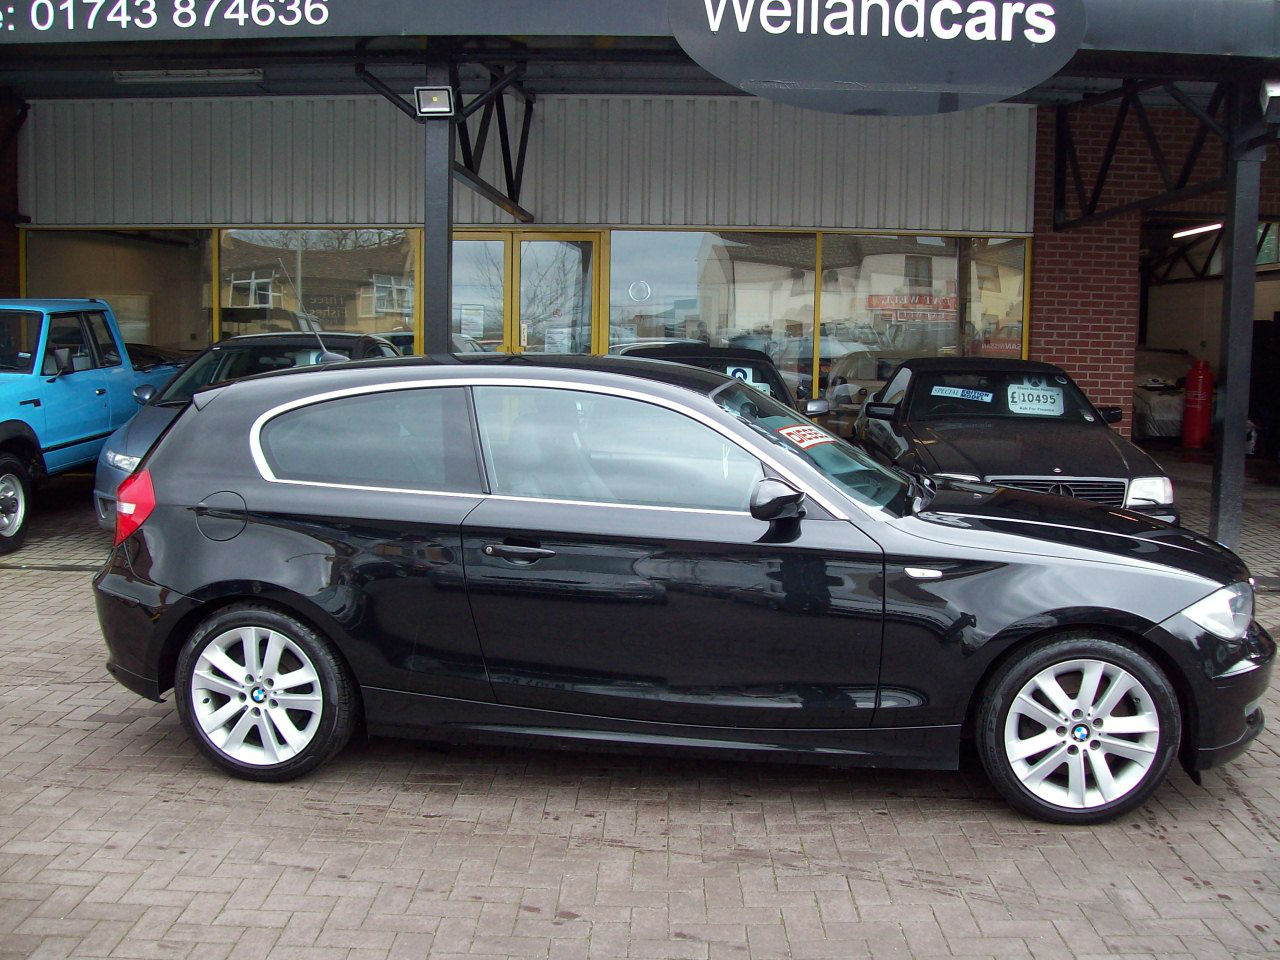 BMW 1 Series 123d SE 3dr 2.0 diesel twin turbo 204 bhp - 64 mpg, F/S/H , Full leather Hatchback Diesel Black at Welland Cars Shrewsbury